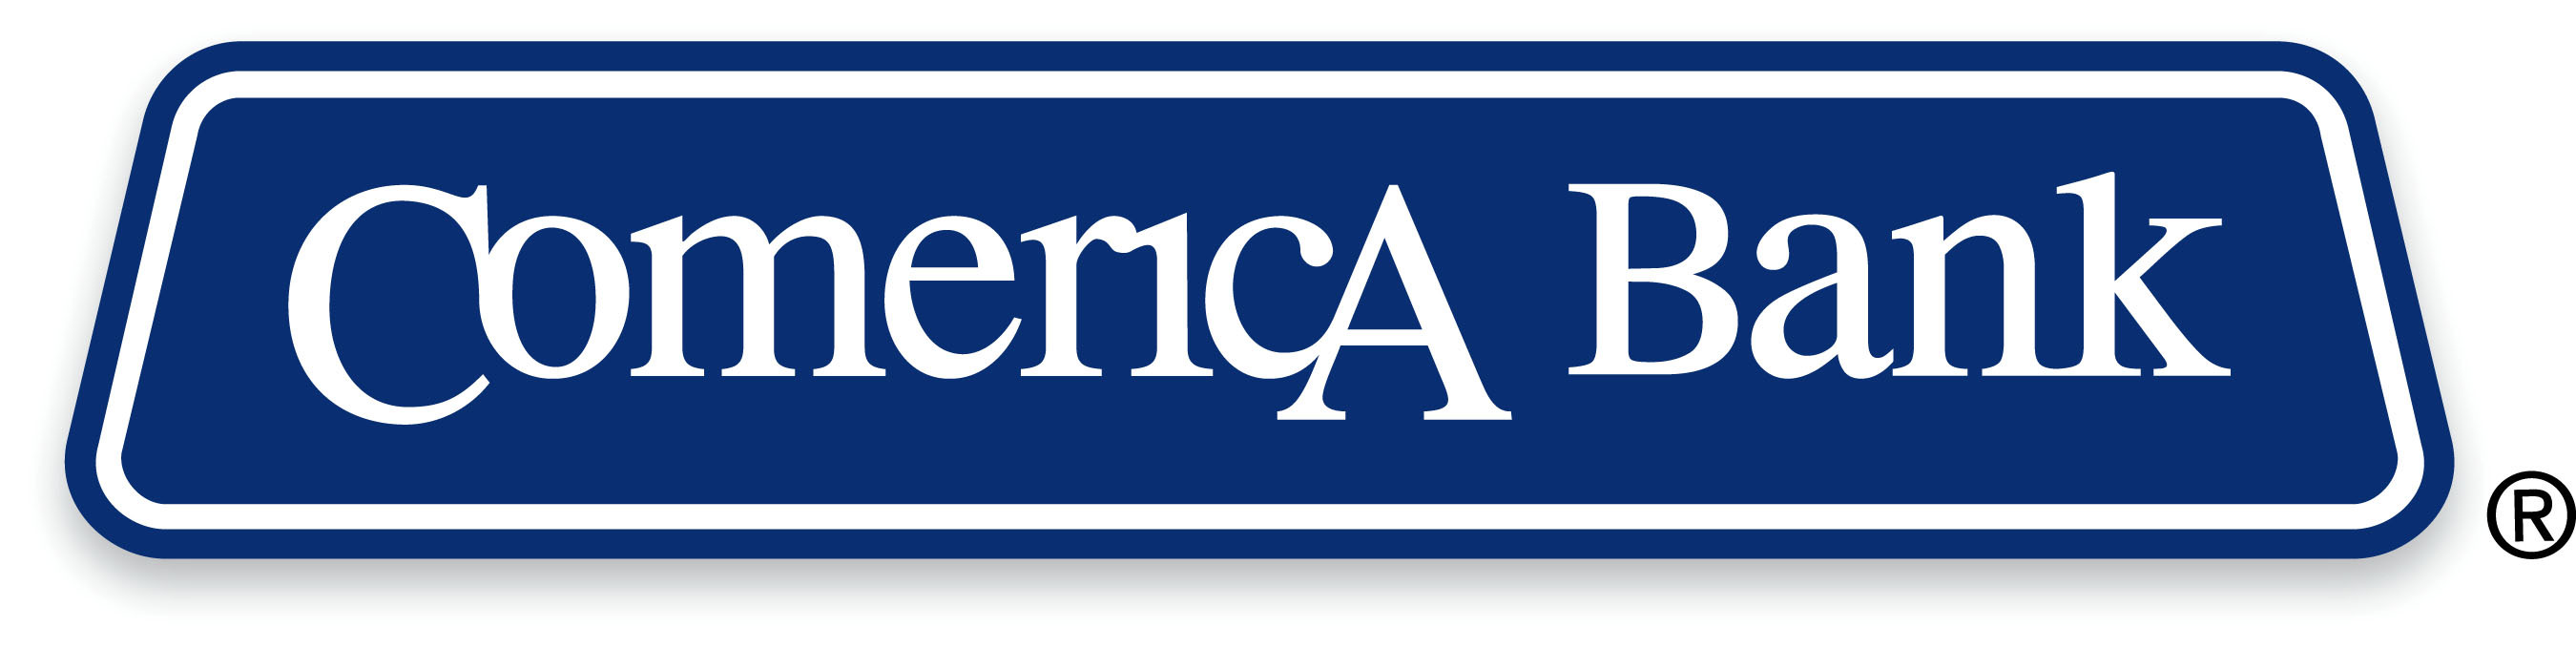 Image result for Comerica Bank Foundation